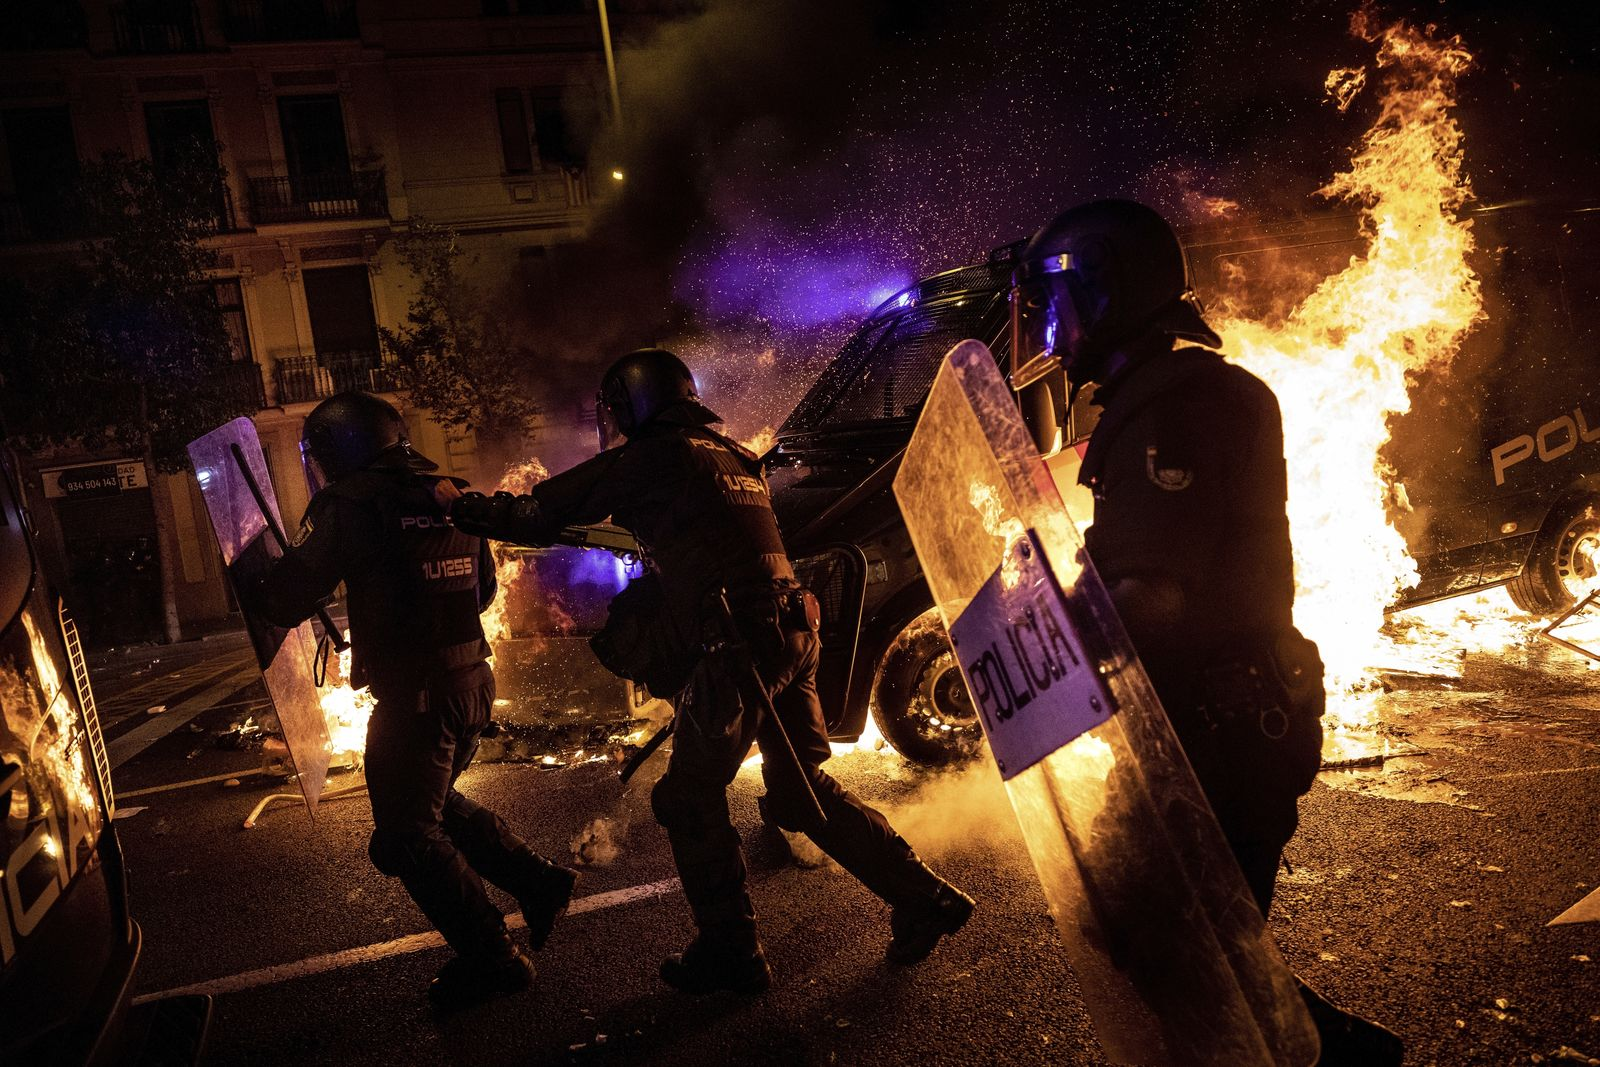 Policemen run as a police van drives over a burning barricade during clashes between protestors and police in Barcelona, Spain, Wednesday, Oct. 16, 2019.{ } (AP Photo/Bernat Armangue)